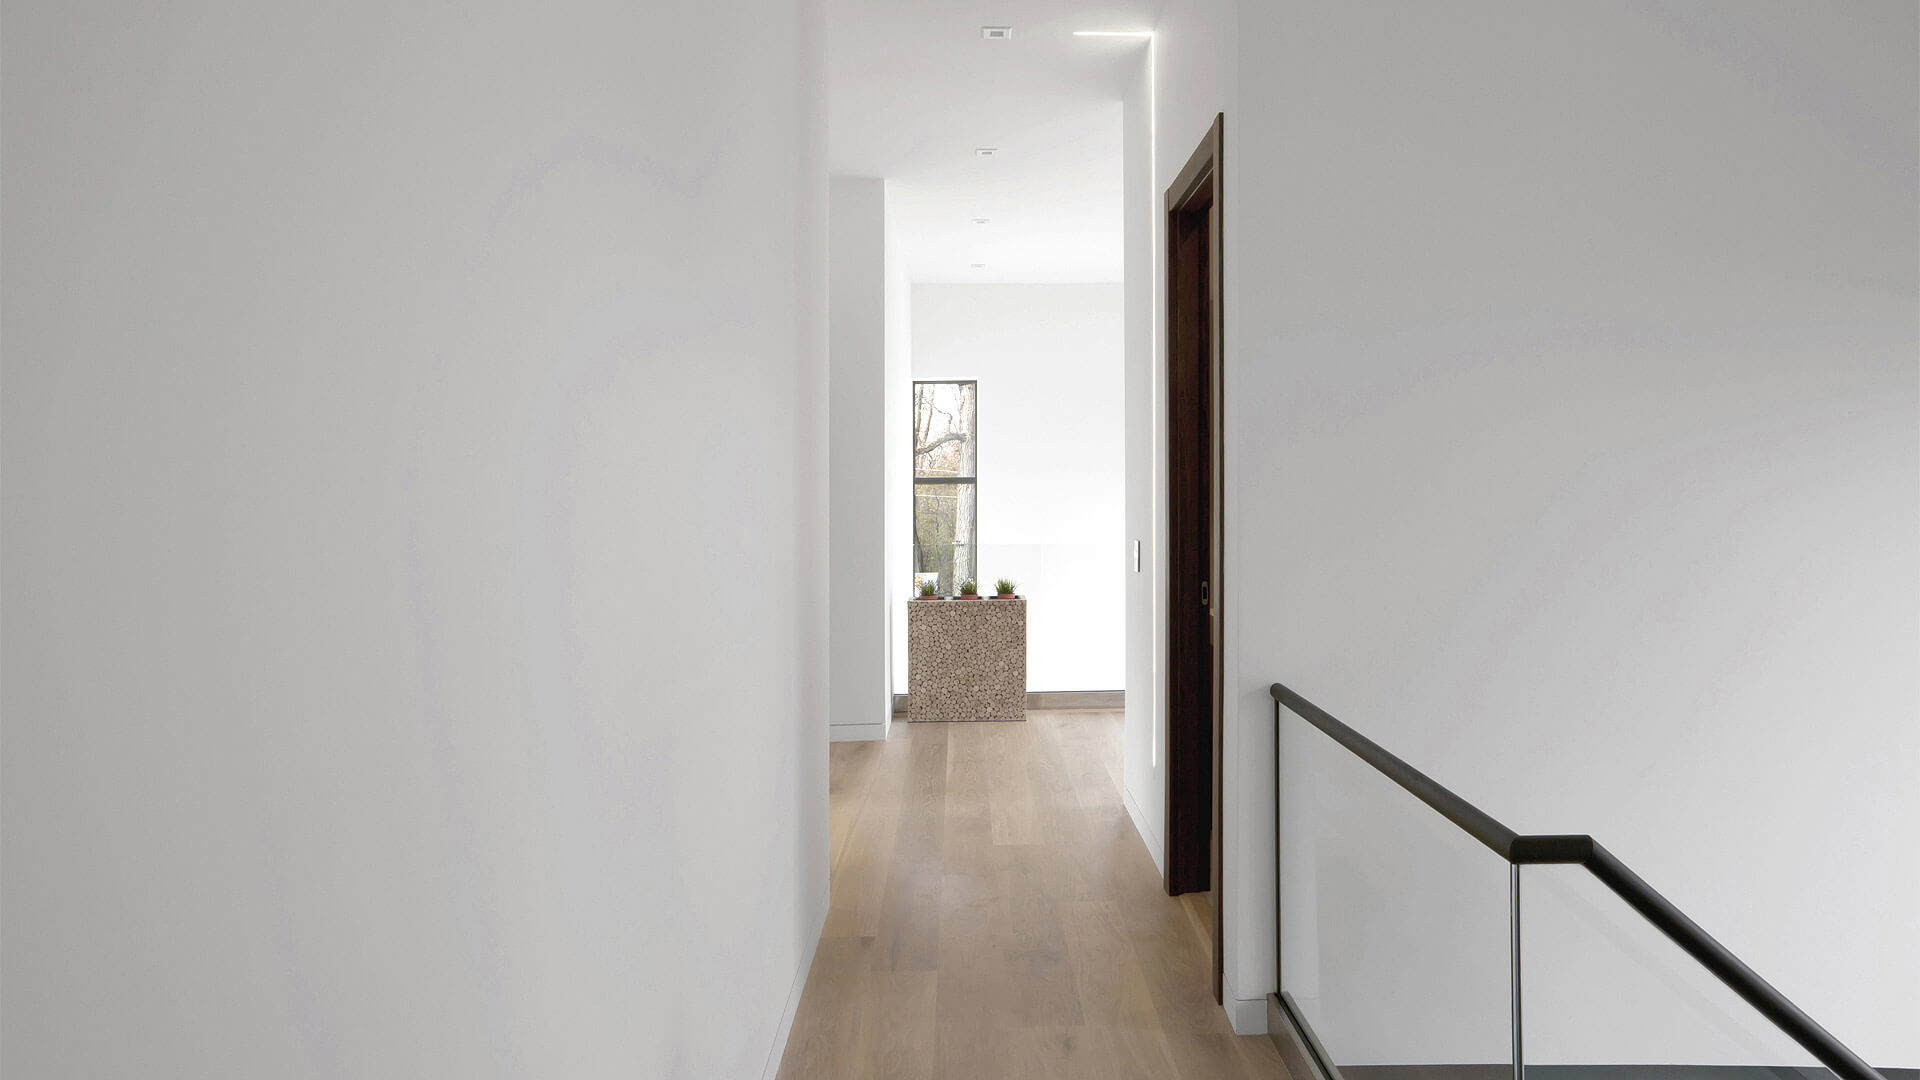 Upstairs Hallway features abundant natural light from stair and two-story entry glazing + LED slot wall/ceiling accent light - Minimalist Modern - Indian Head Park - Chicago, Illinois - HAUS | Architecture For Modern Lifestyles, Christopher Short, Indianapolis Architect with Joe Trojanowski